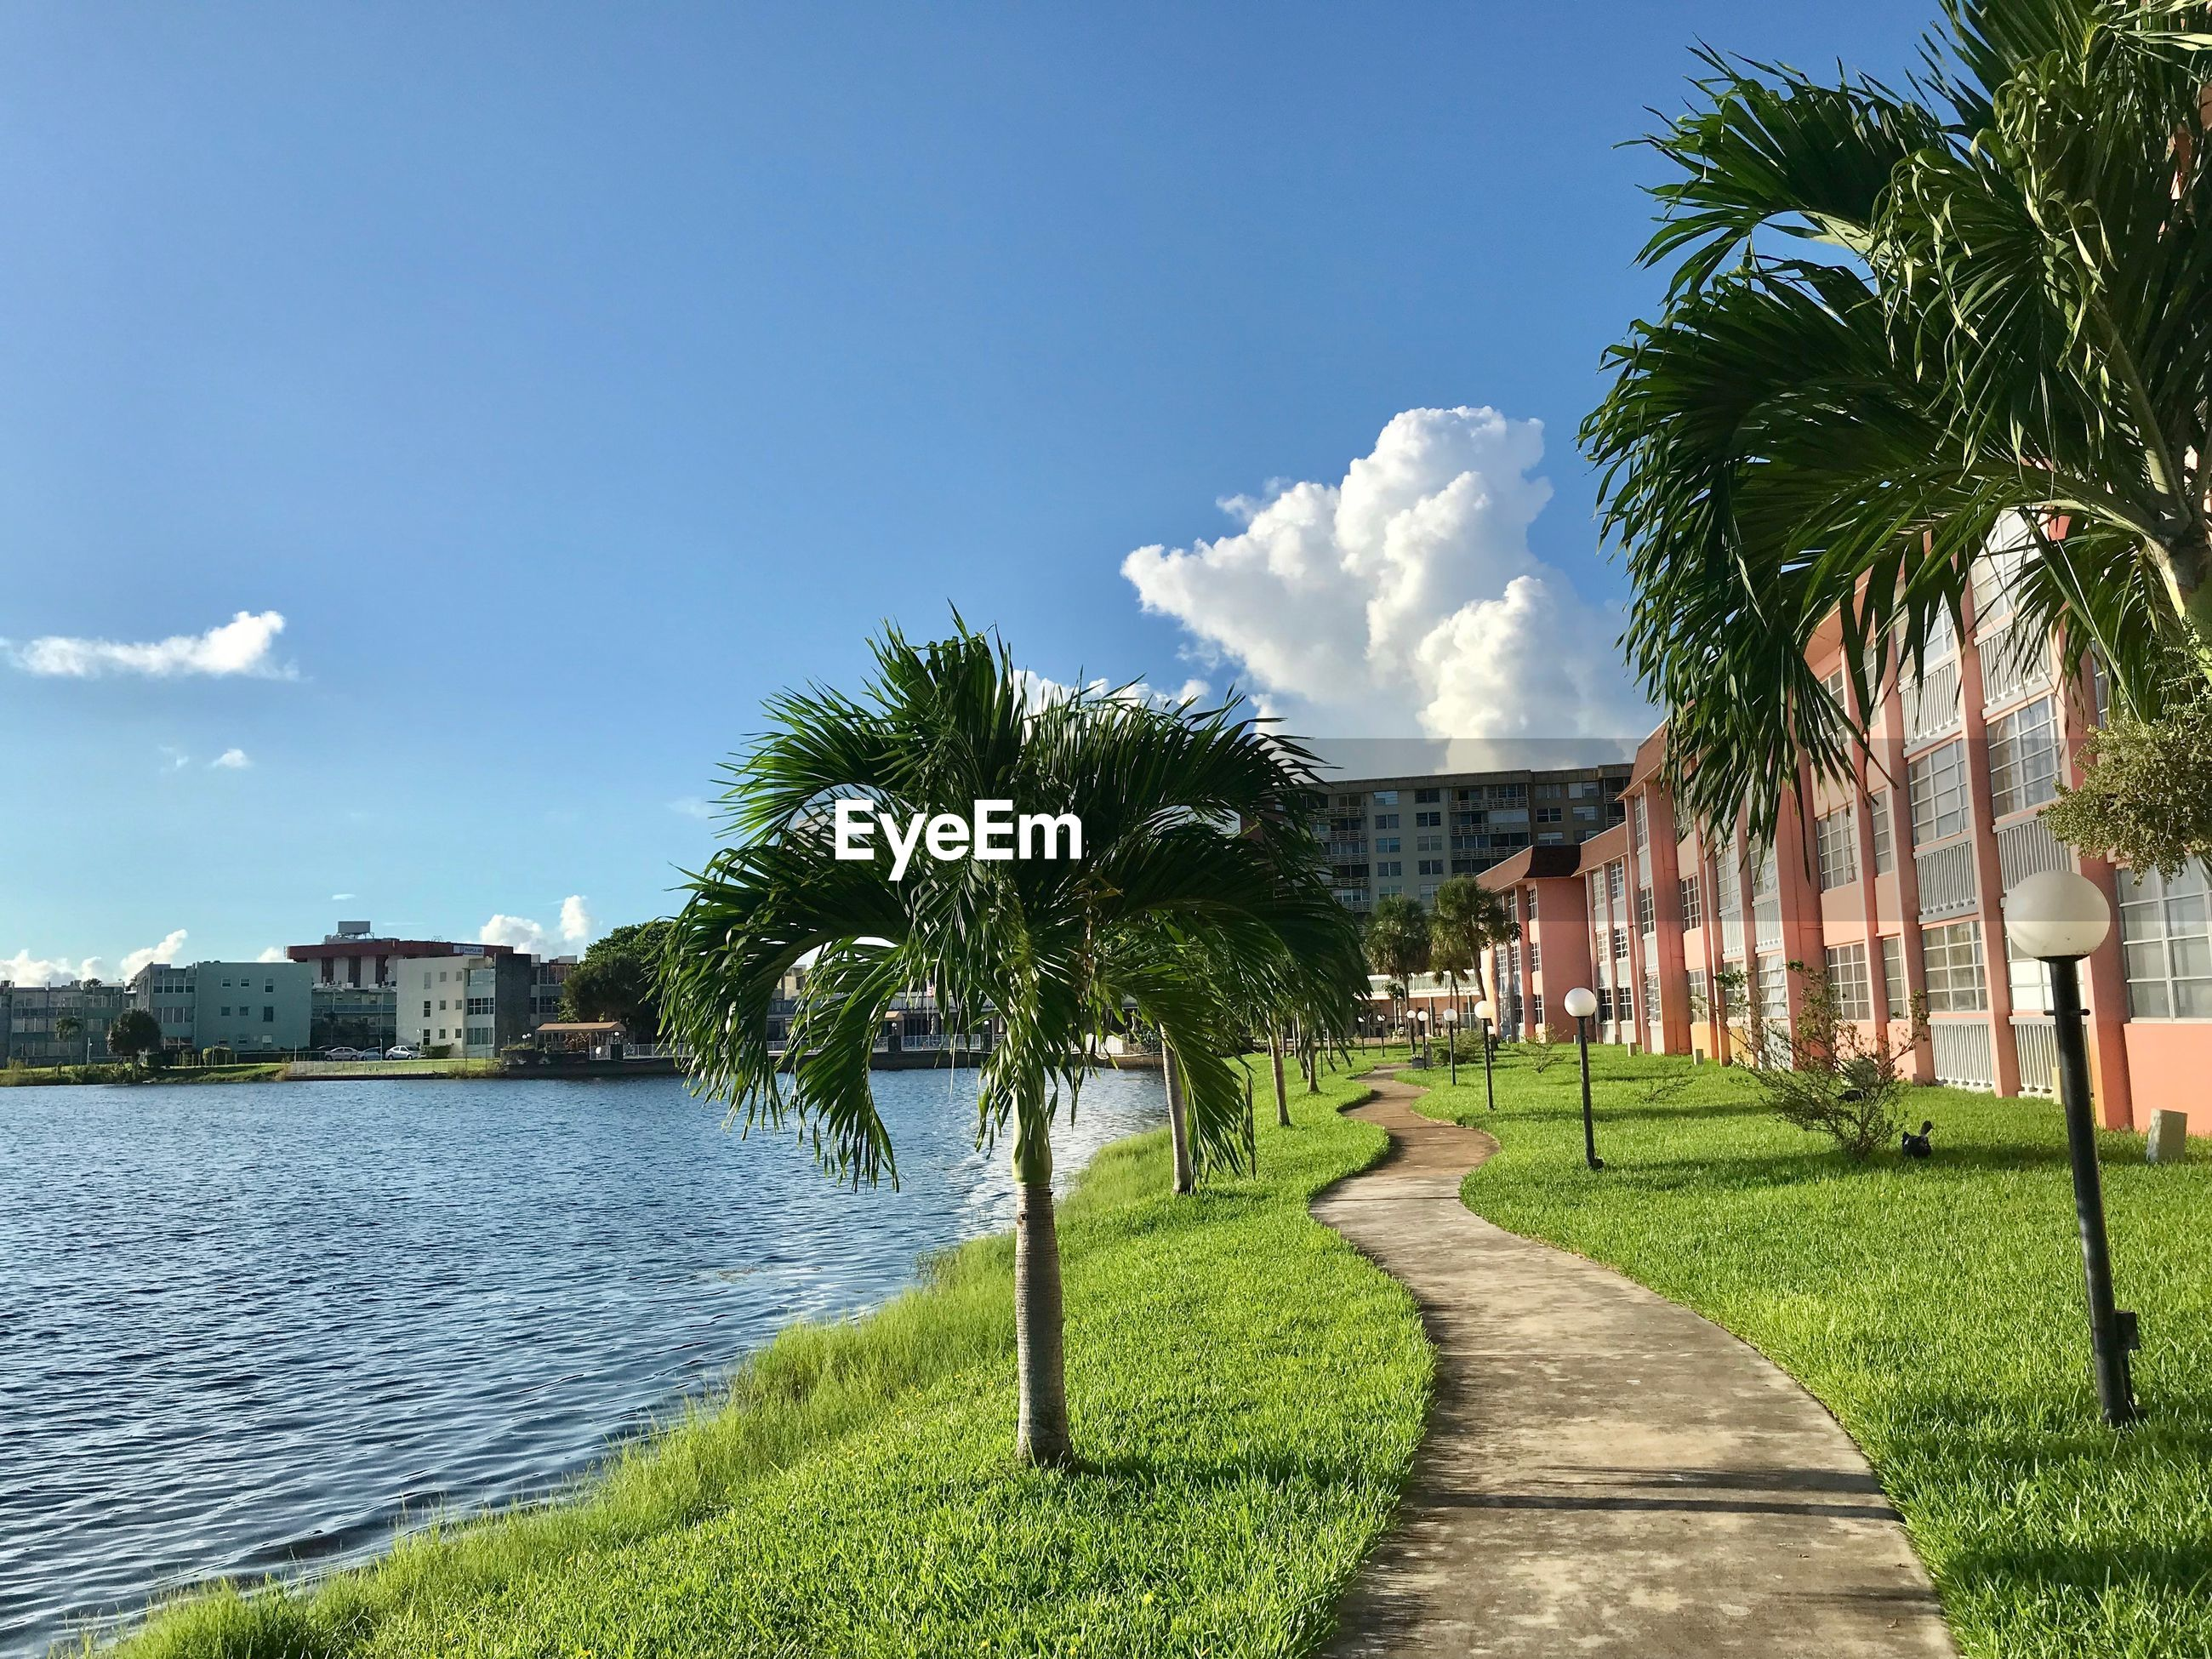 Footpath amidst palm trees and buildings against sky